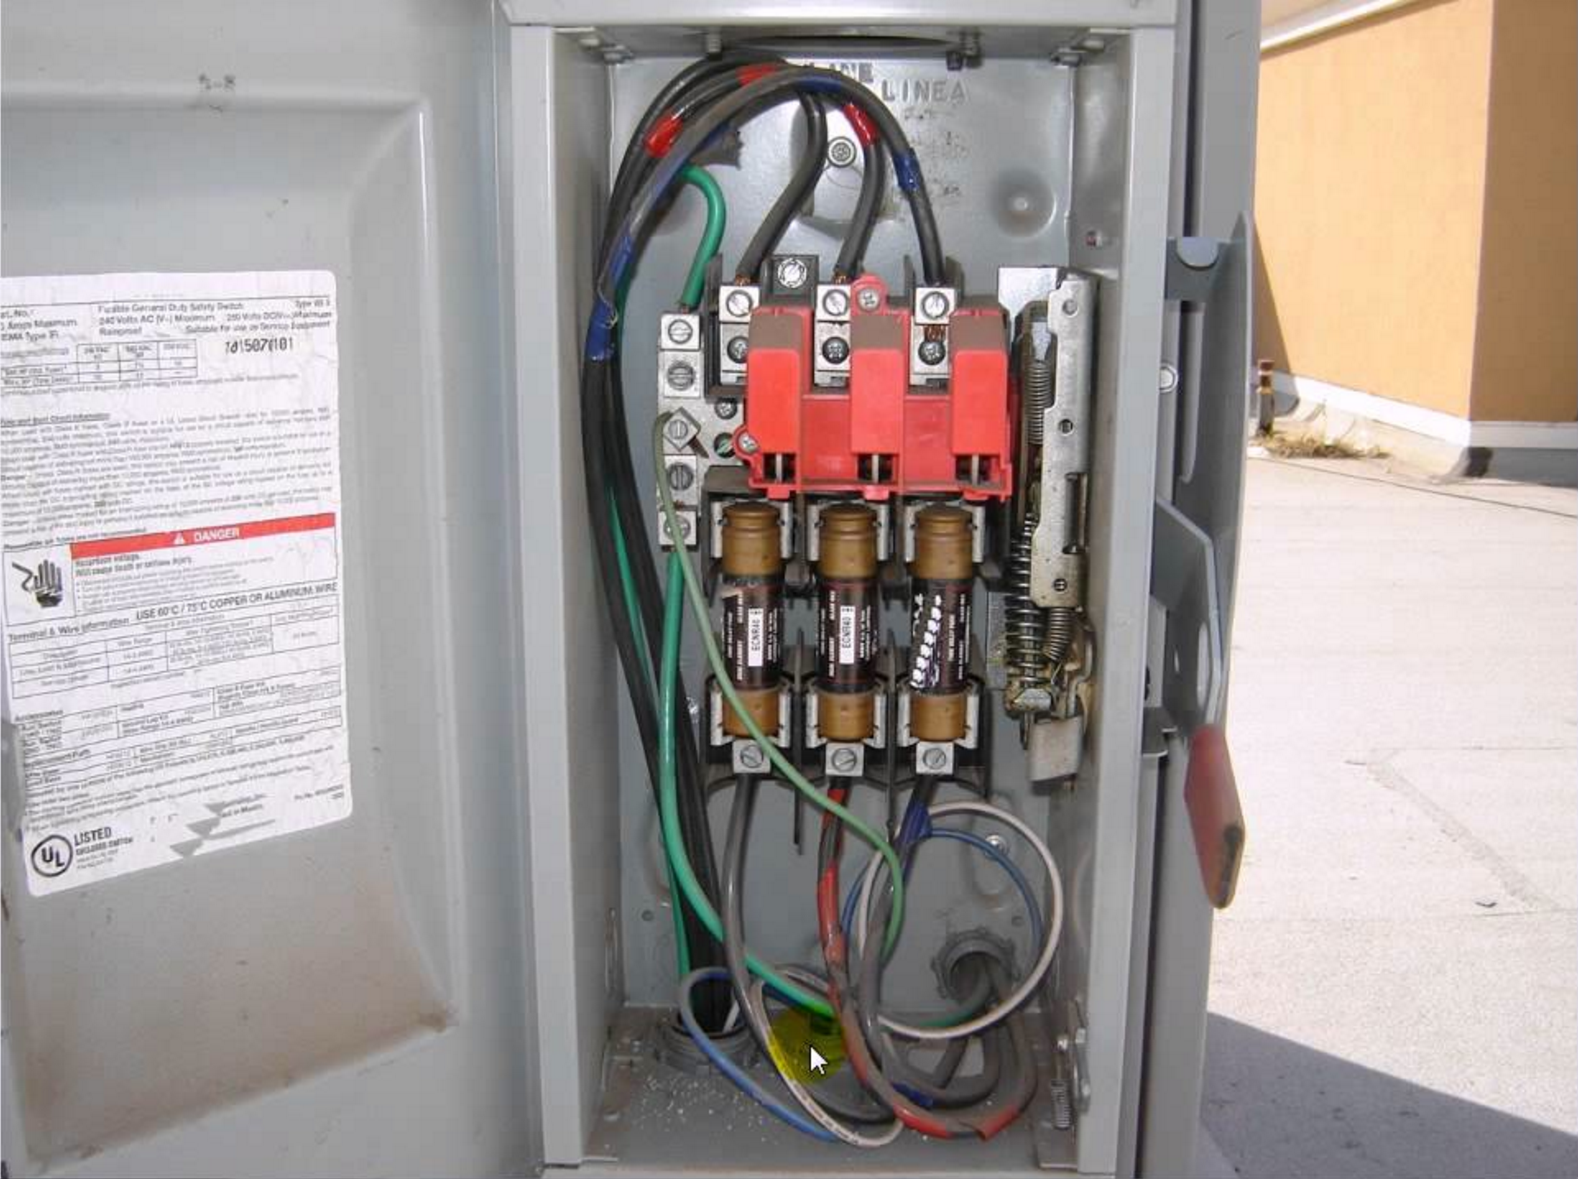 a 3 phase electrical disconnect box